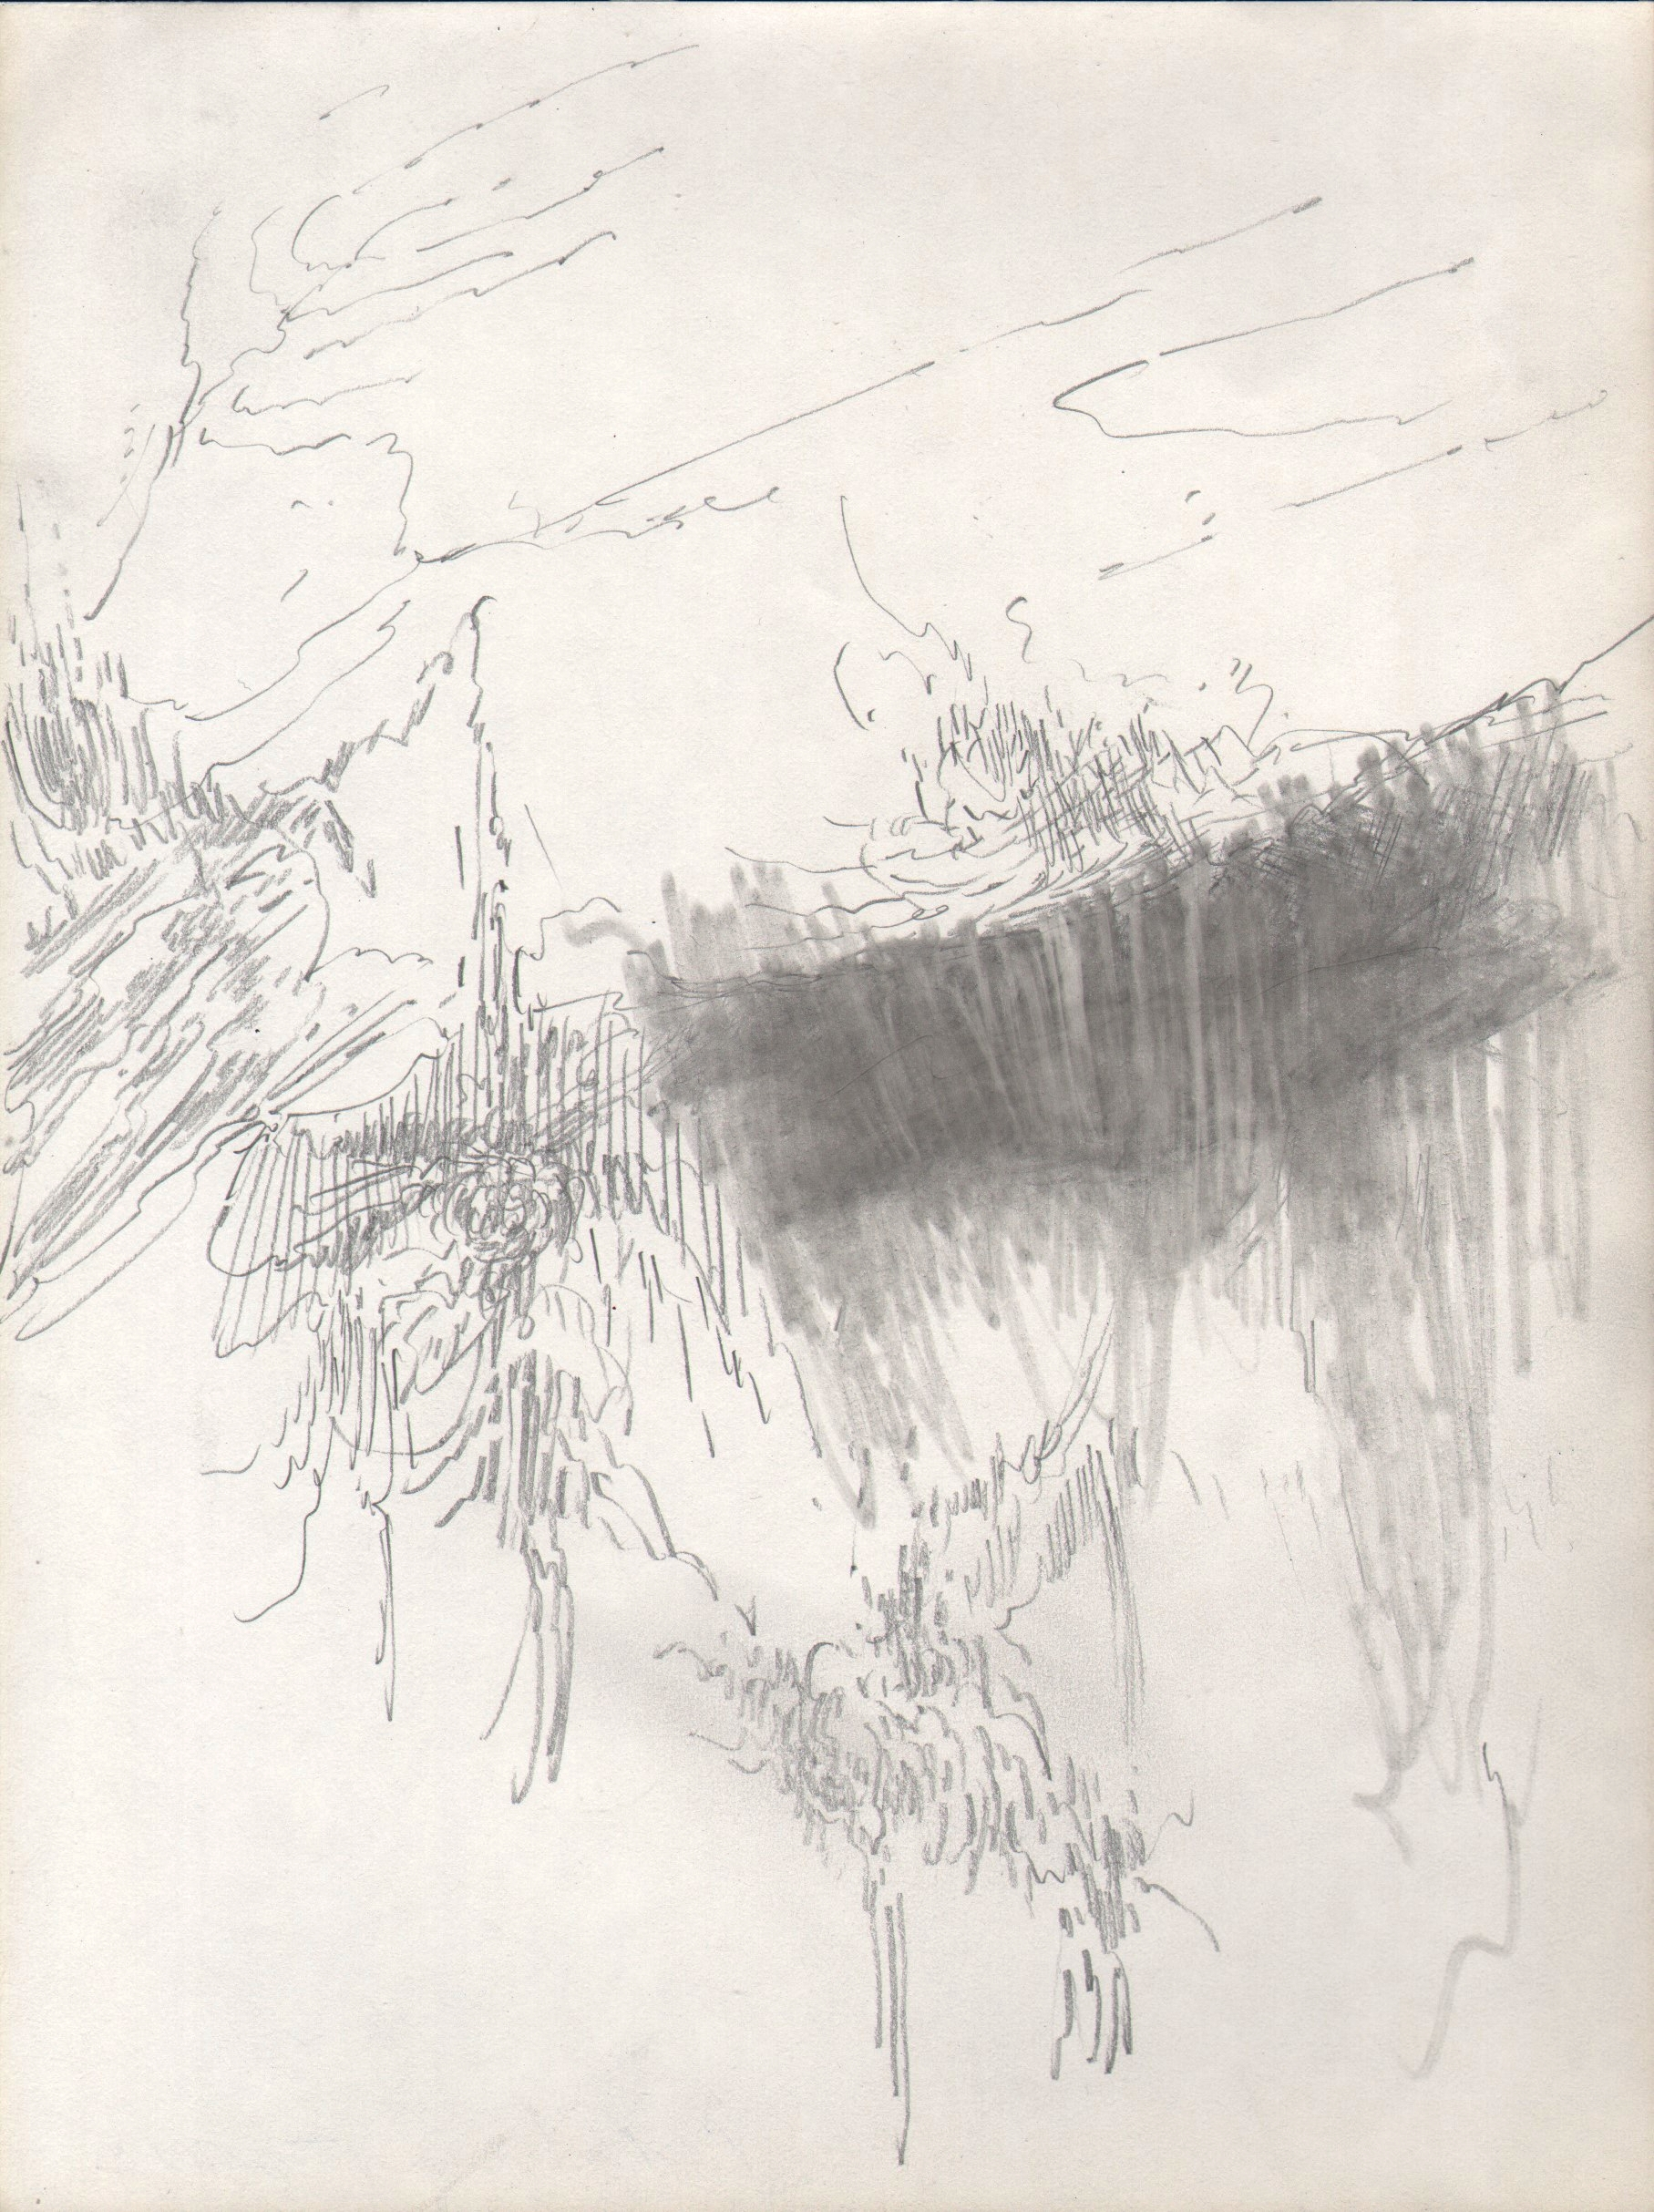 Vapor Trails, 2015, 8 x 6 inches, pencil on paper